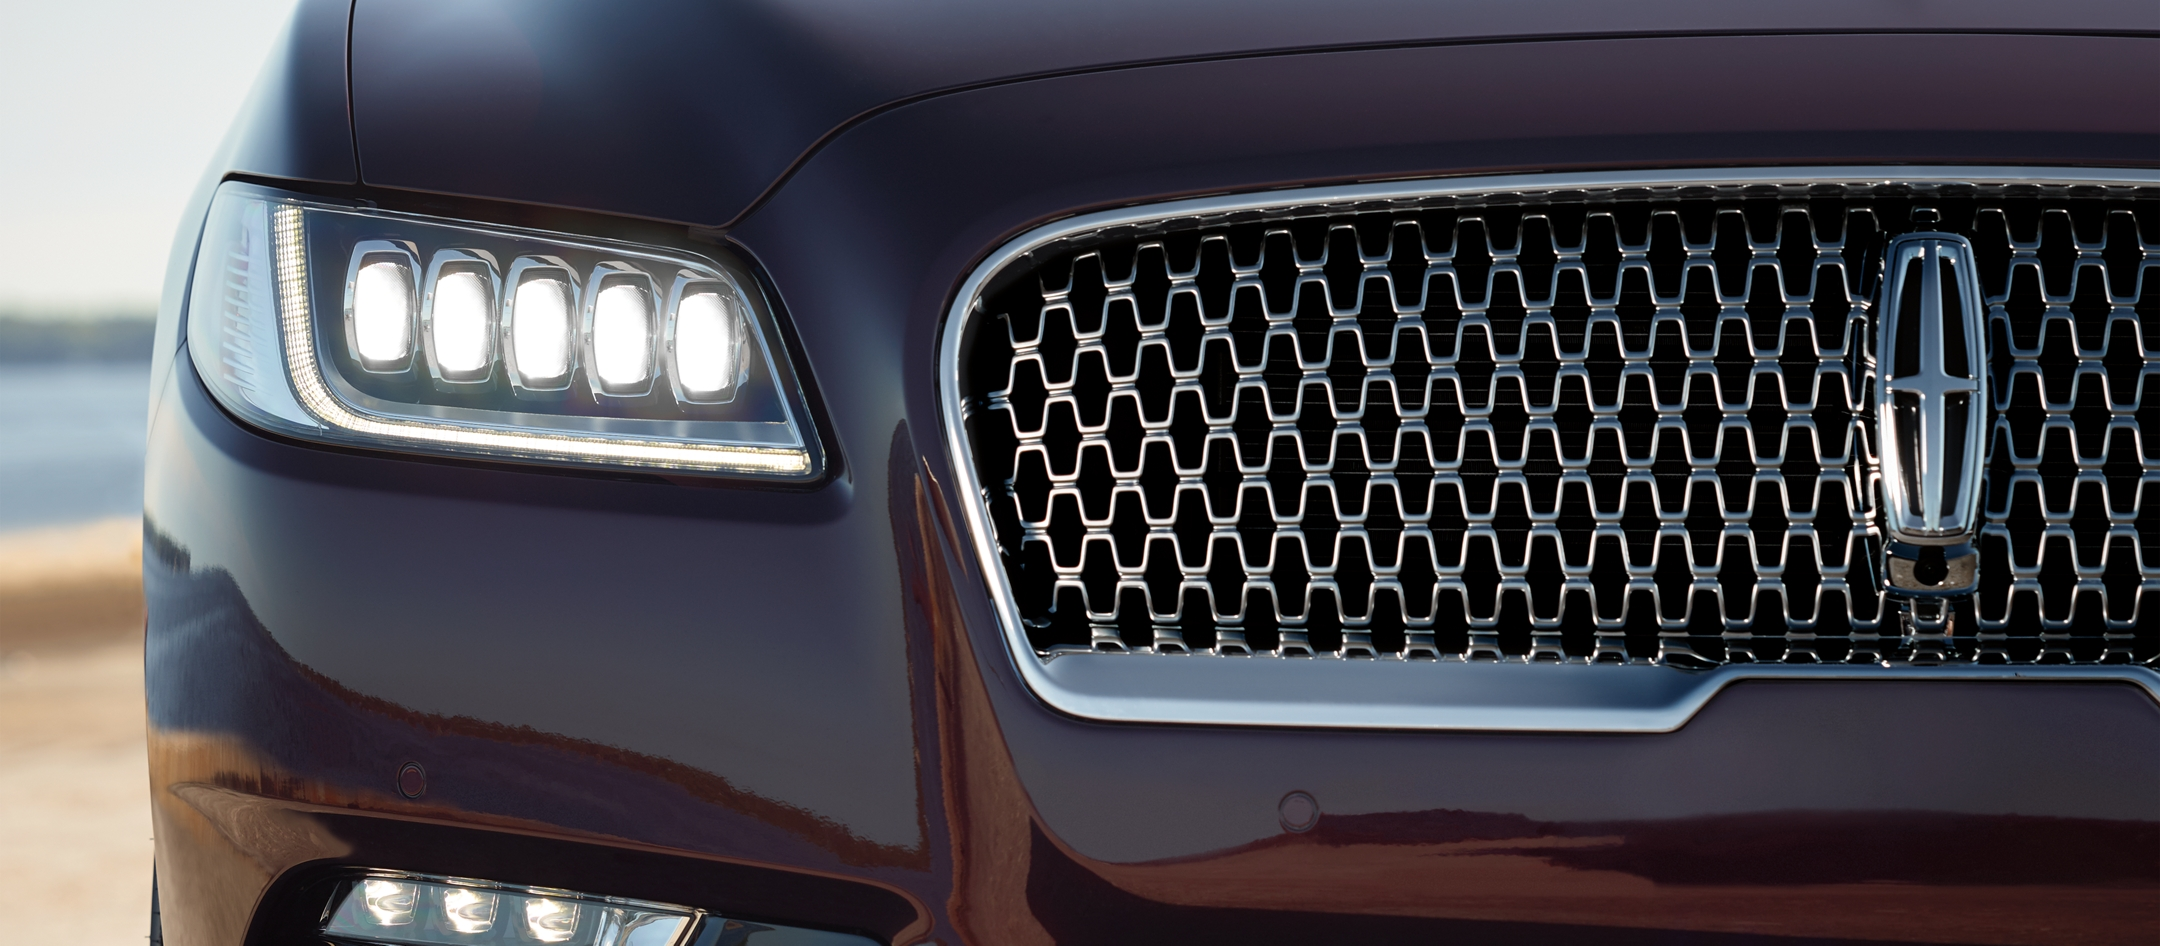 A close up image shows the illuminated headlamps of a Lincoln Continental